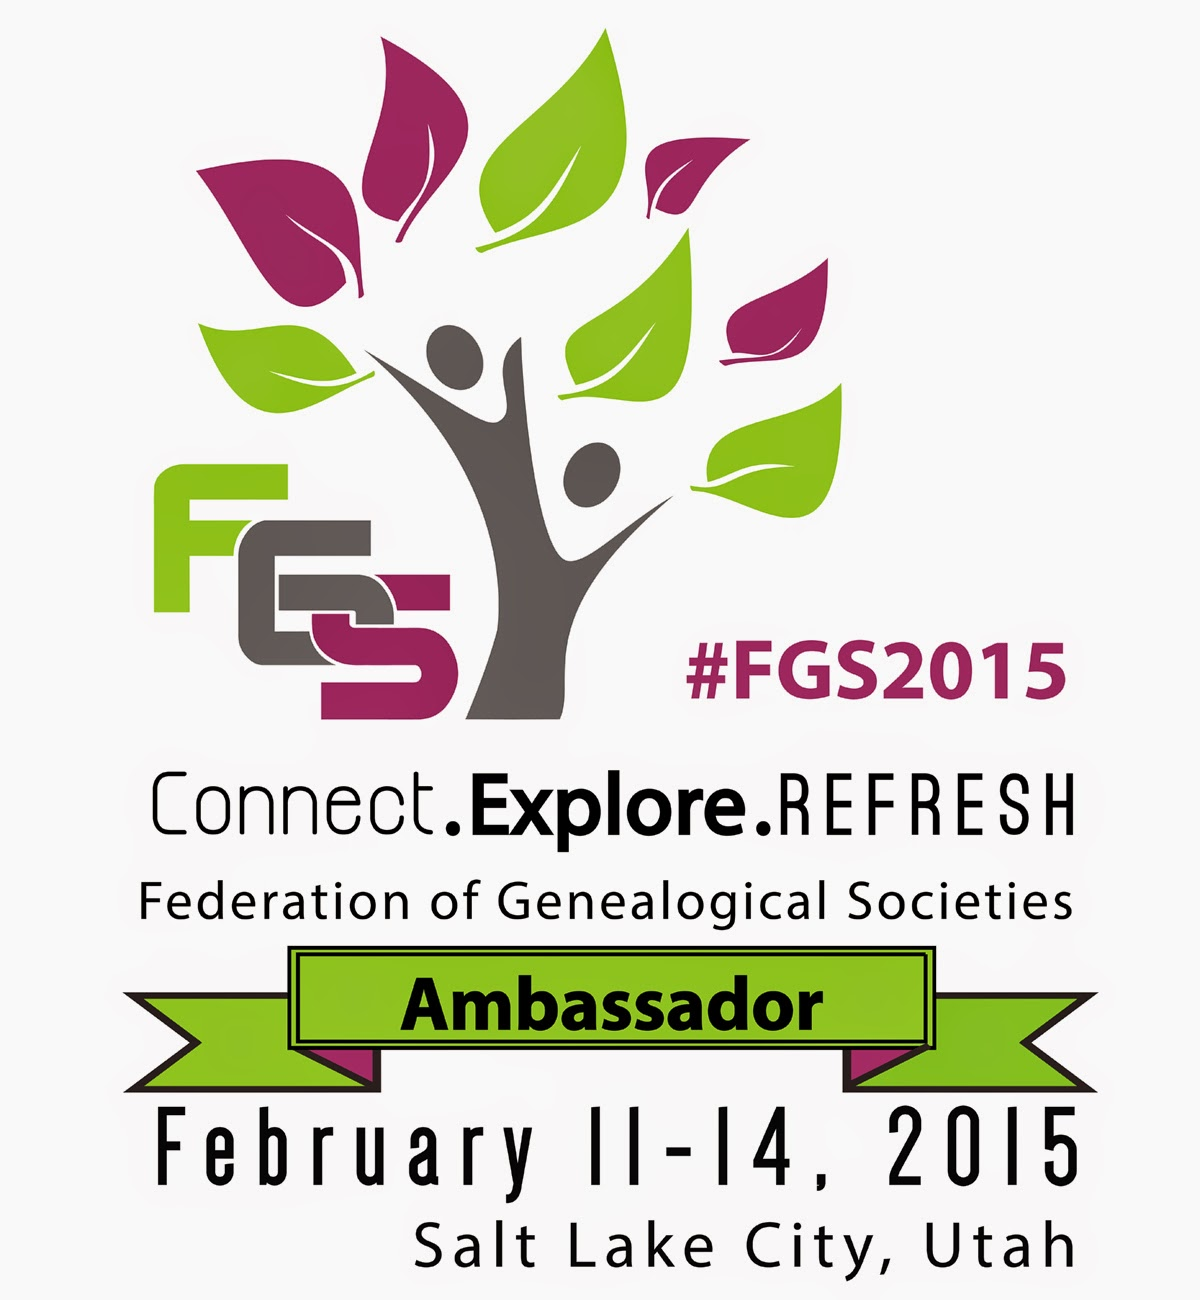 Your 2015 FGS Ambassador